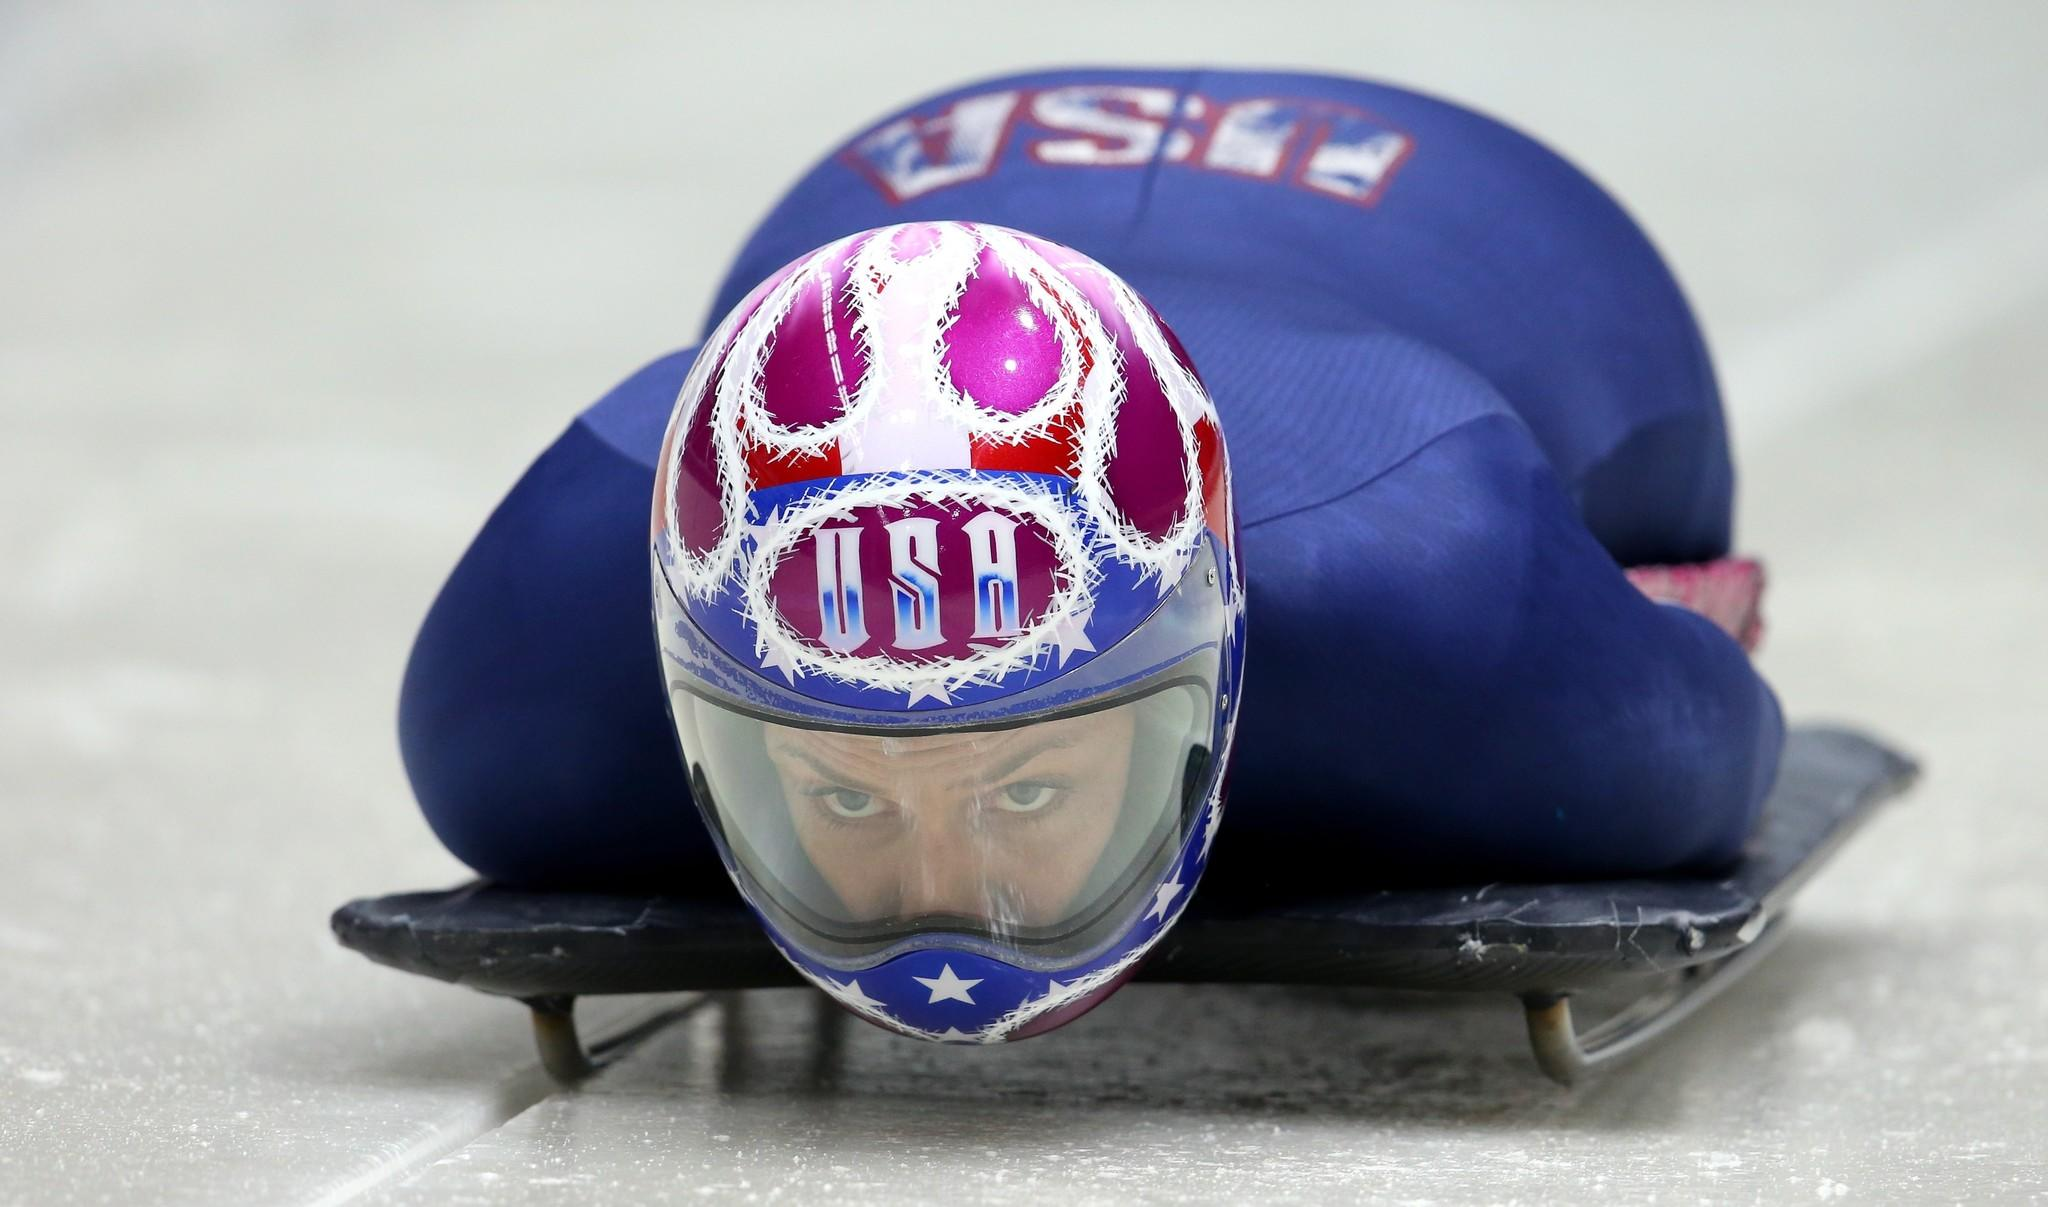 Noelle Pikus-Pace makes a practice skeleton run ahead of the Sochi 2014 Winter Olympics at the Sanki Sliding Center. (Alex Livesey/Getty Photo)